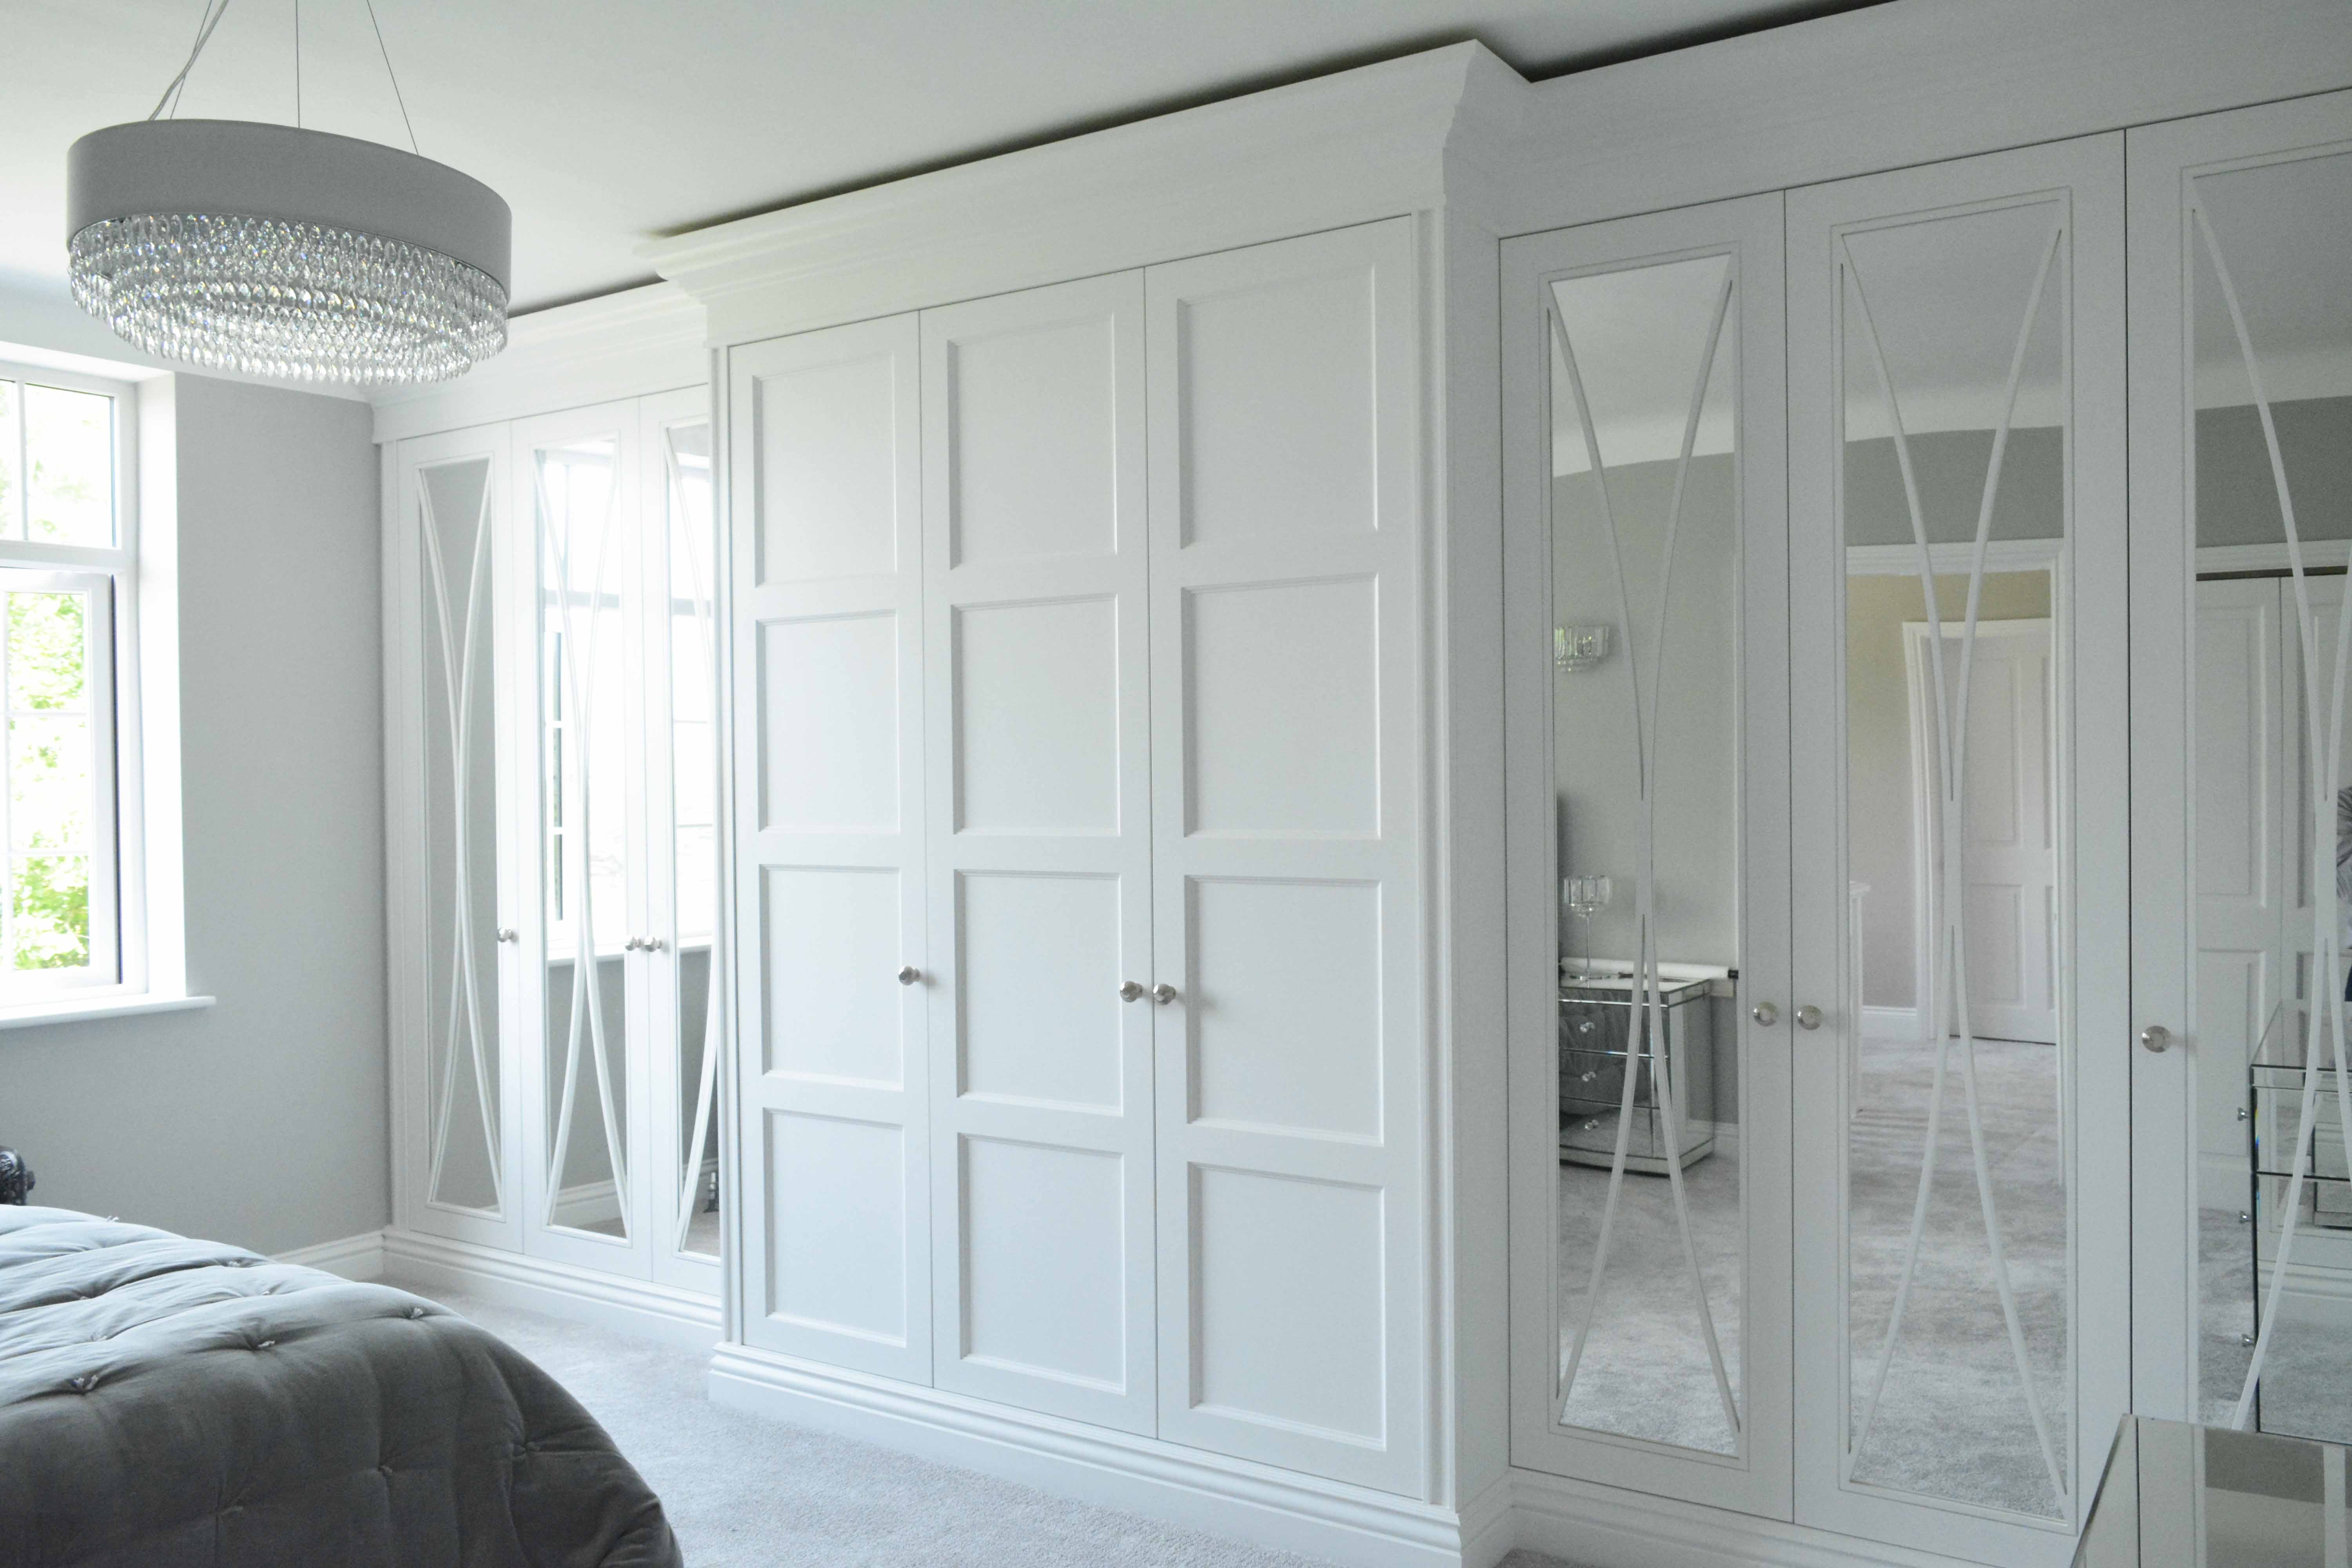 Luxury Fitted Wardrobes Boreham Wood Hertfordshire The Heritage Regarding Fitted Wooden Wardrobes (View 13 of 15)